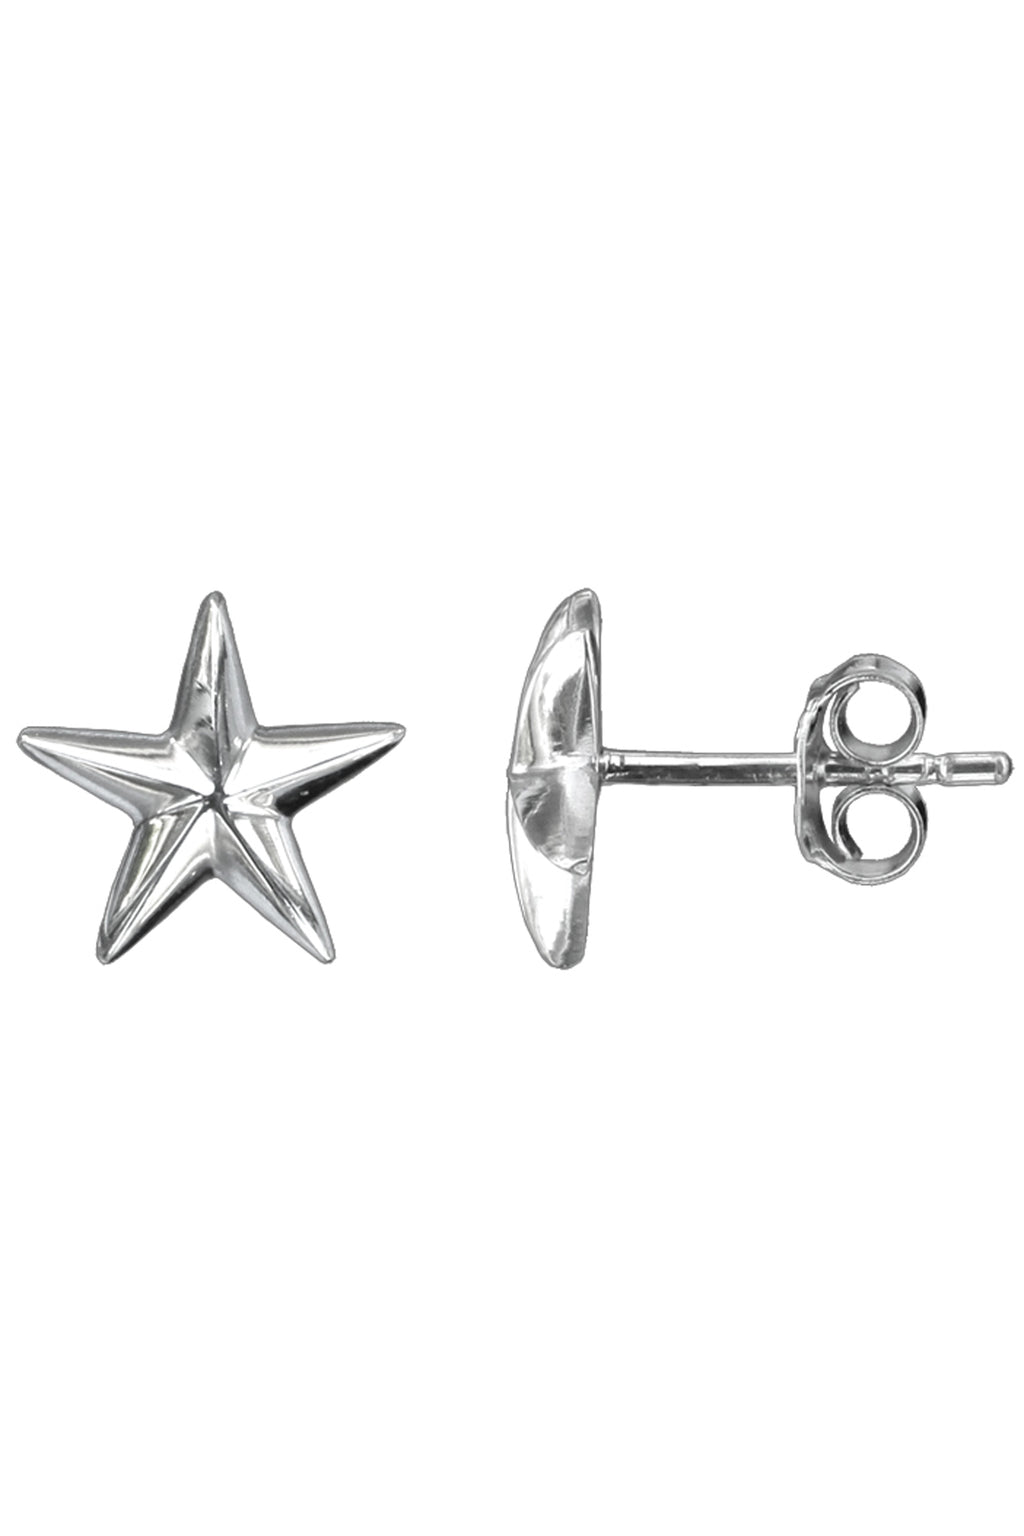 Silver Star Stud Earrings / Nina B Jewellery